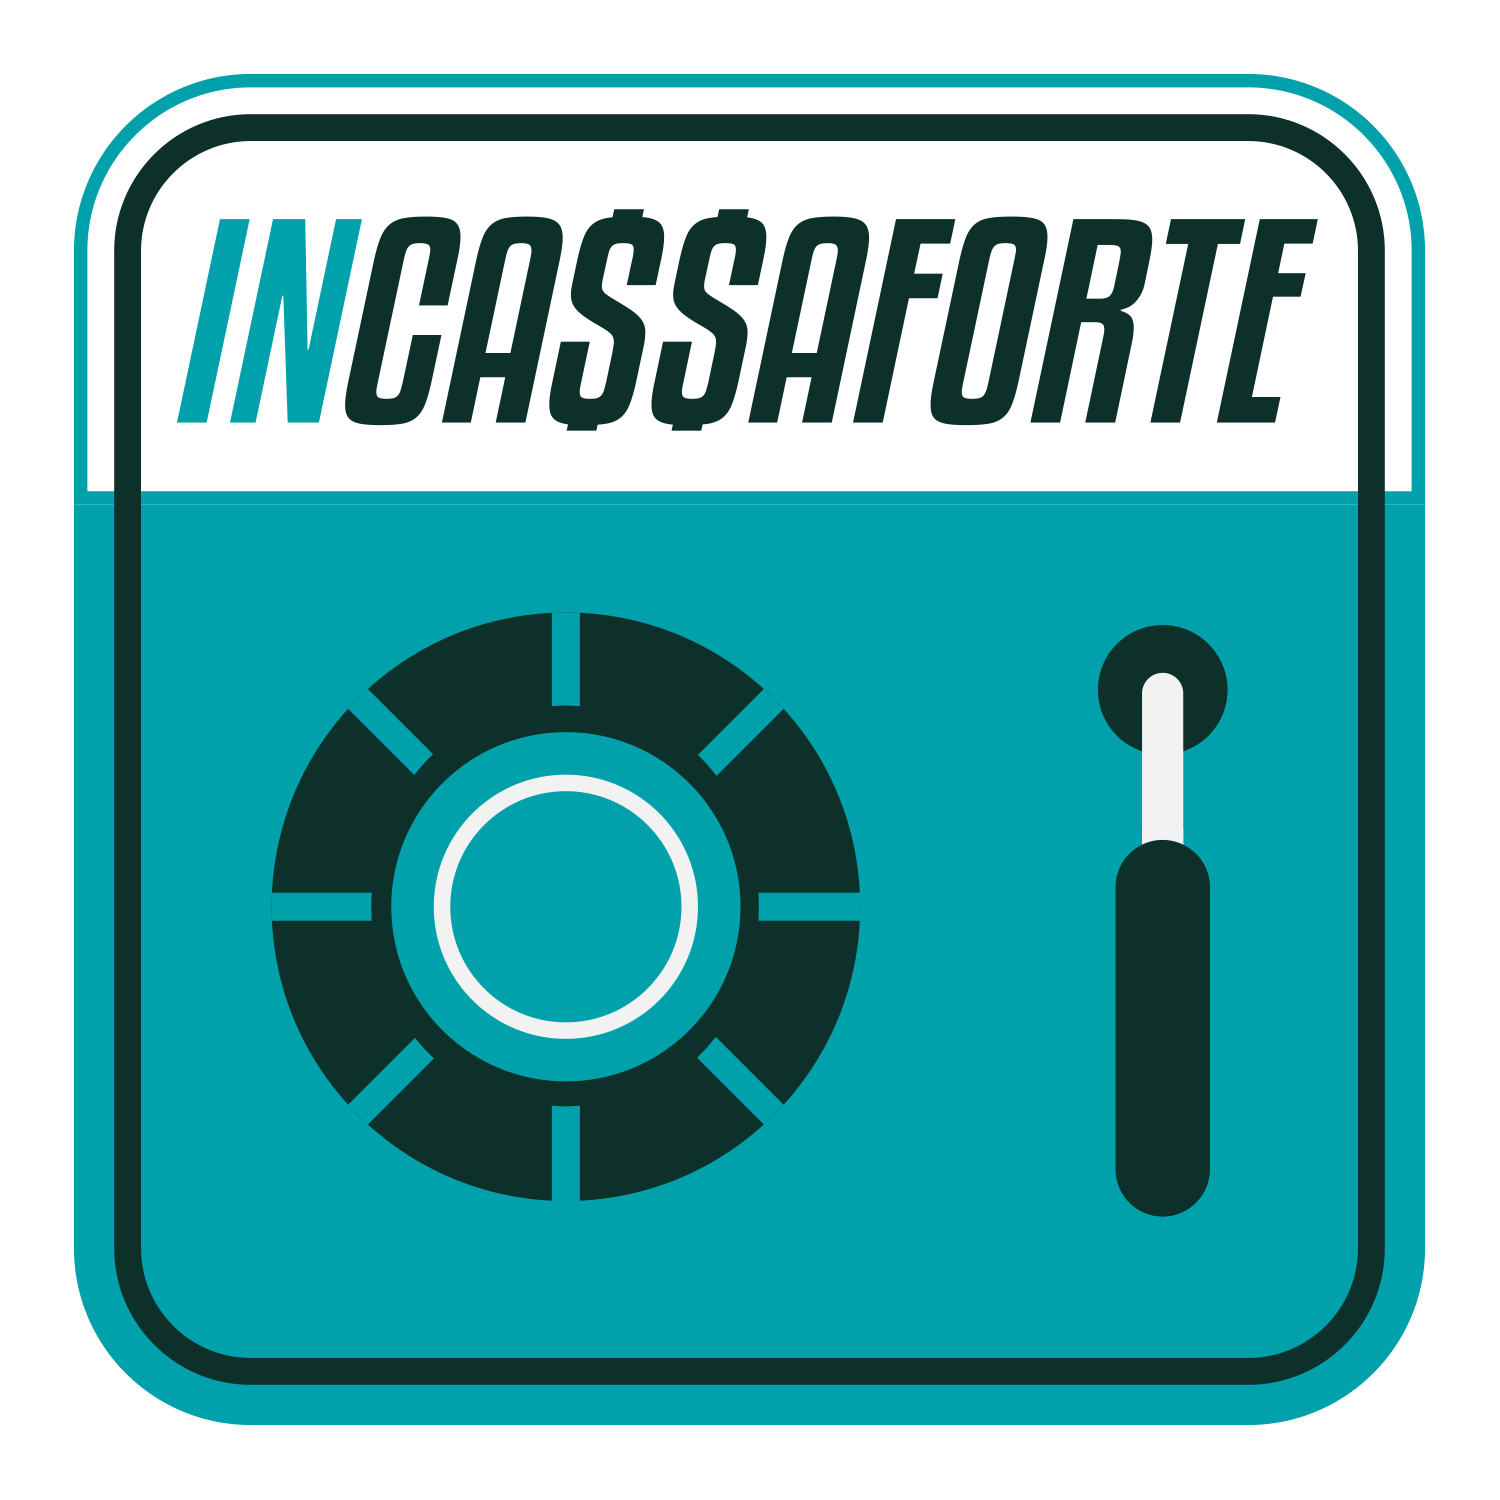 Incassaforte Pod